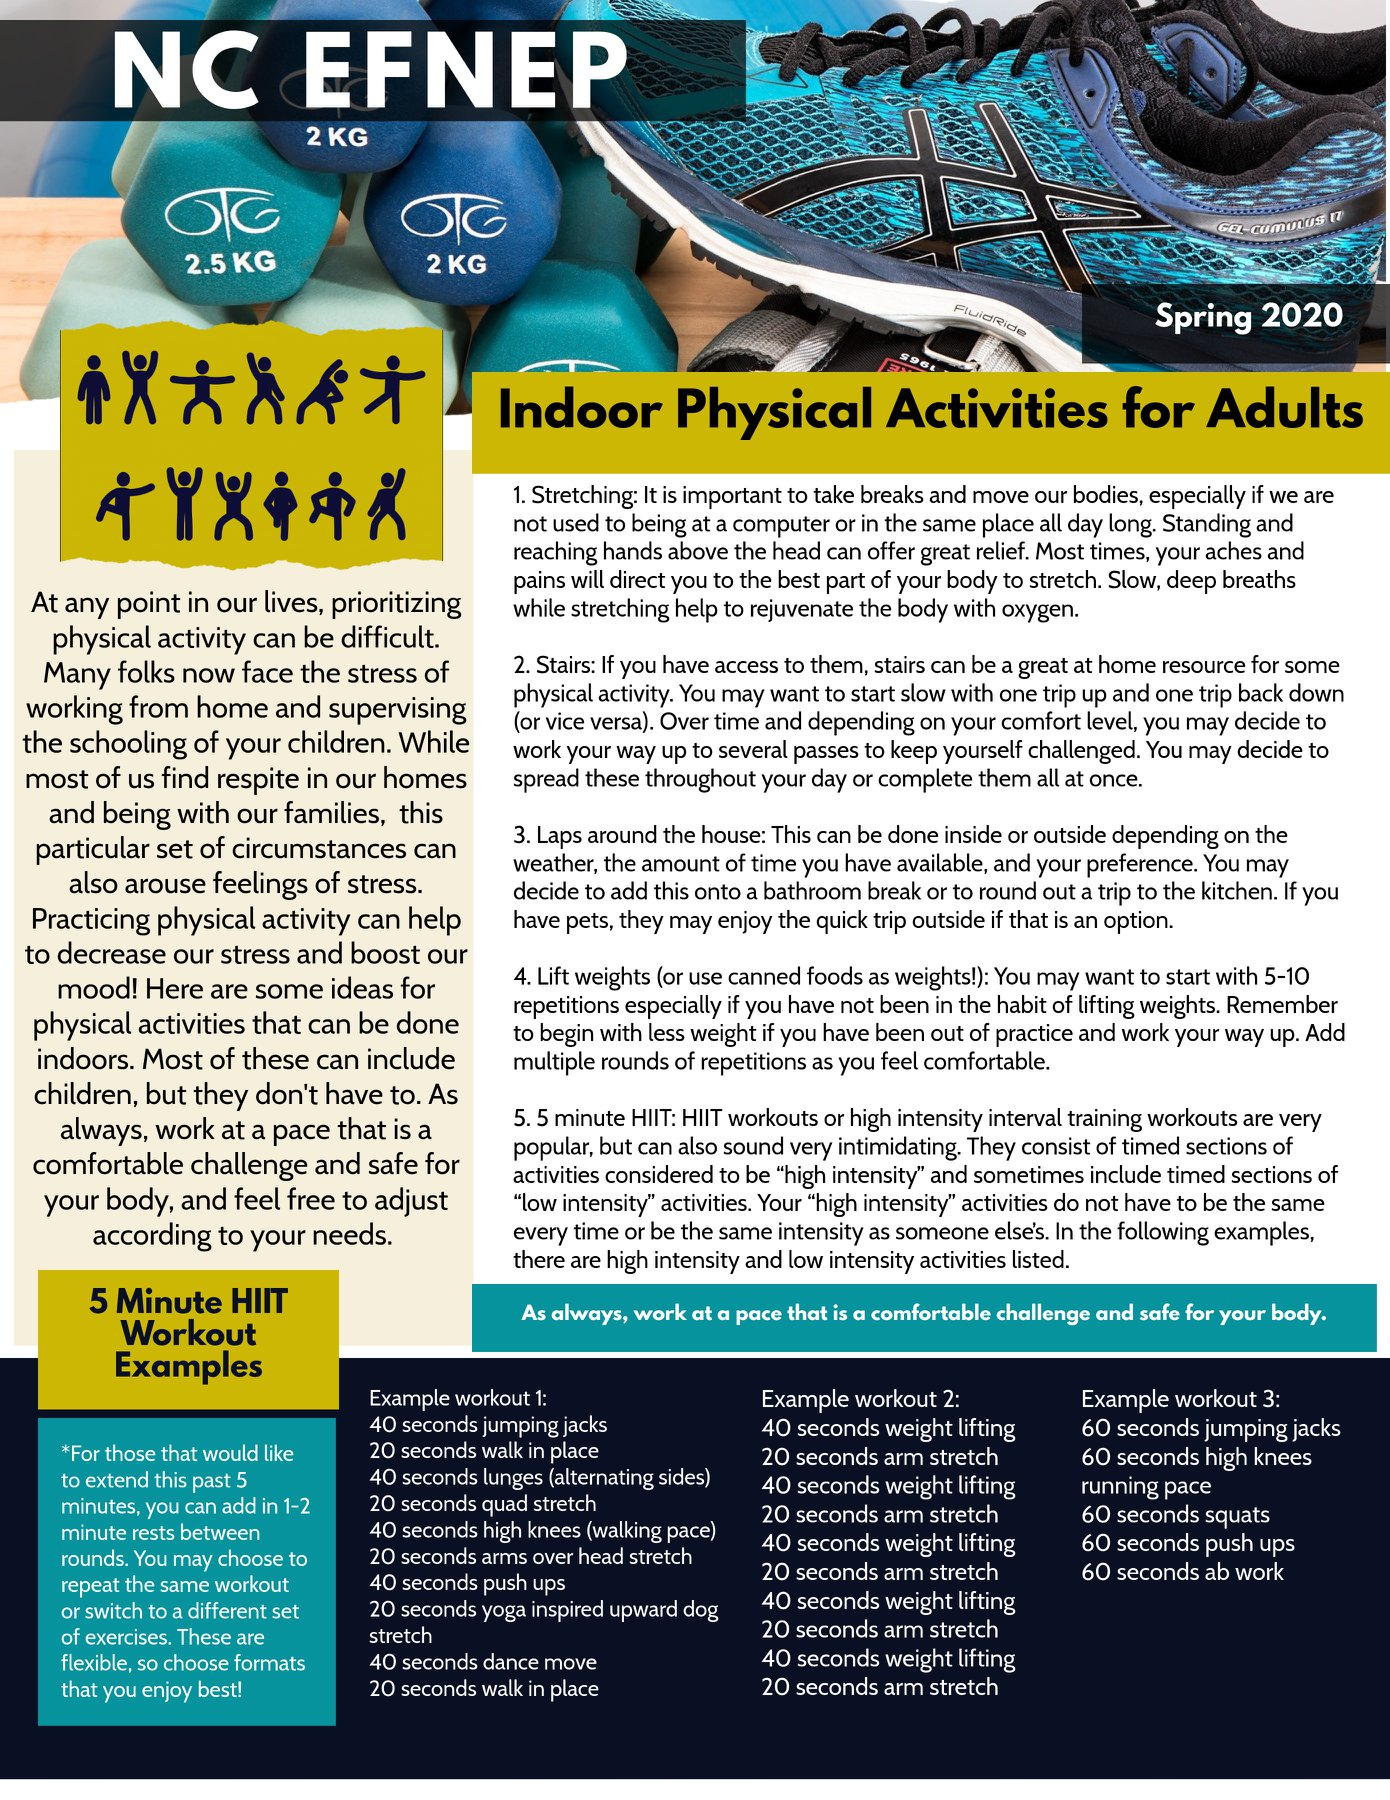 Indoor Physical Activities for Adults